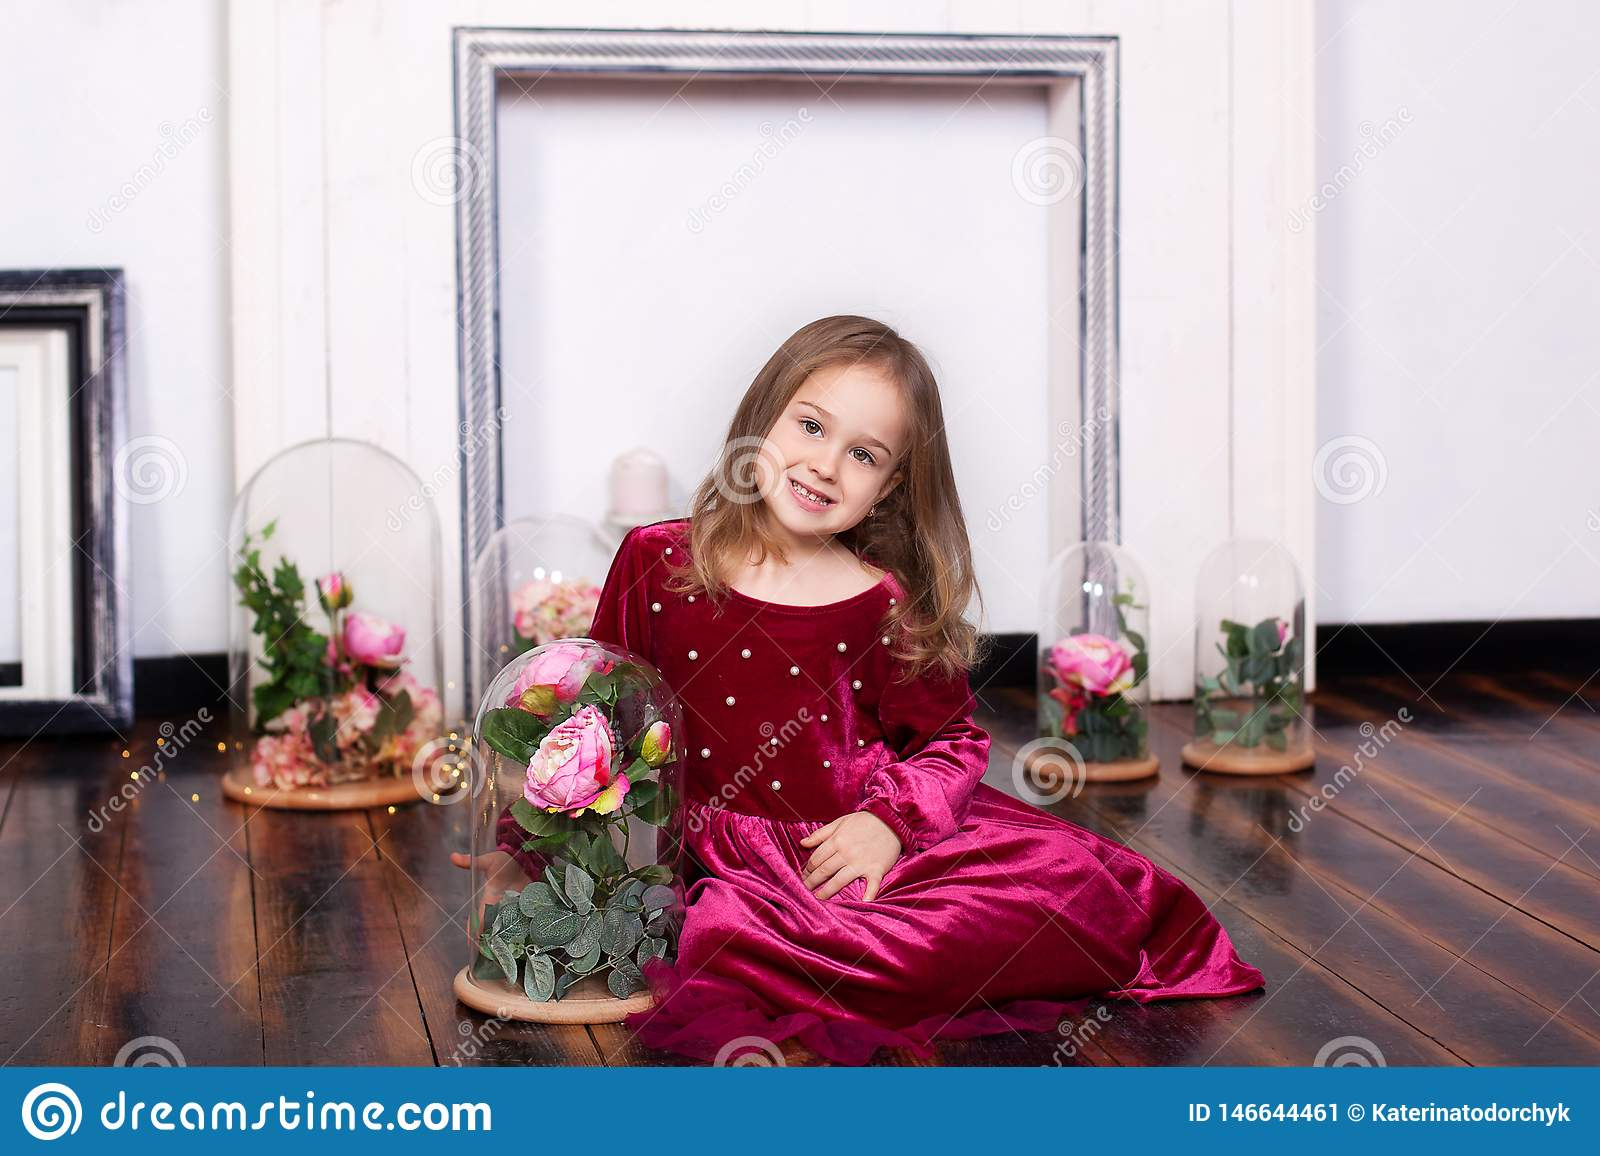 A cute little girl in a dress is sitting on the floor with a rose in a flask. Looking at the camera. Childhood. Sweet princess. Th